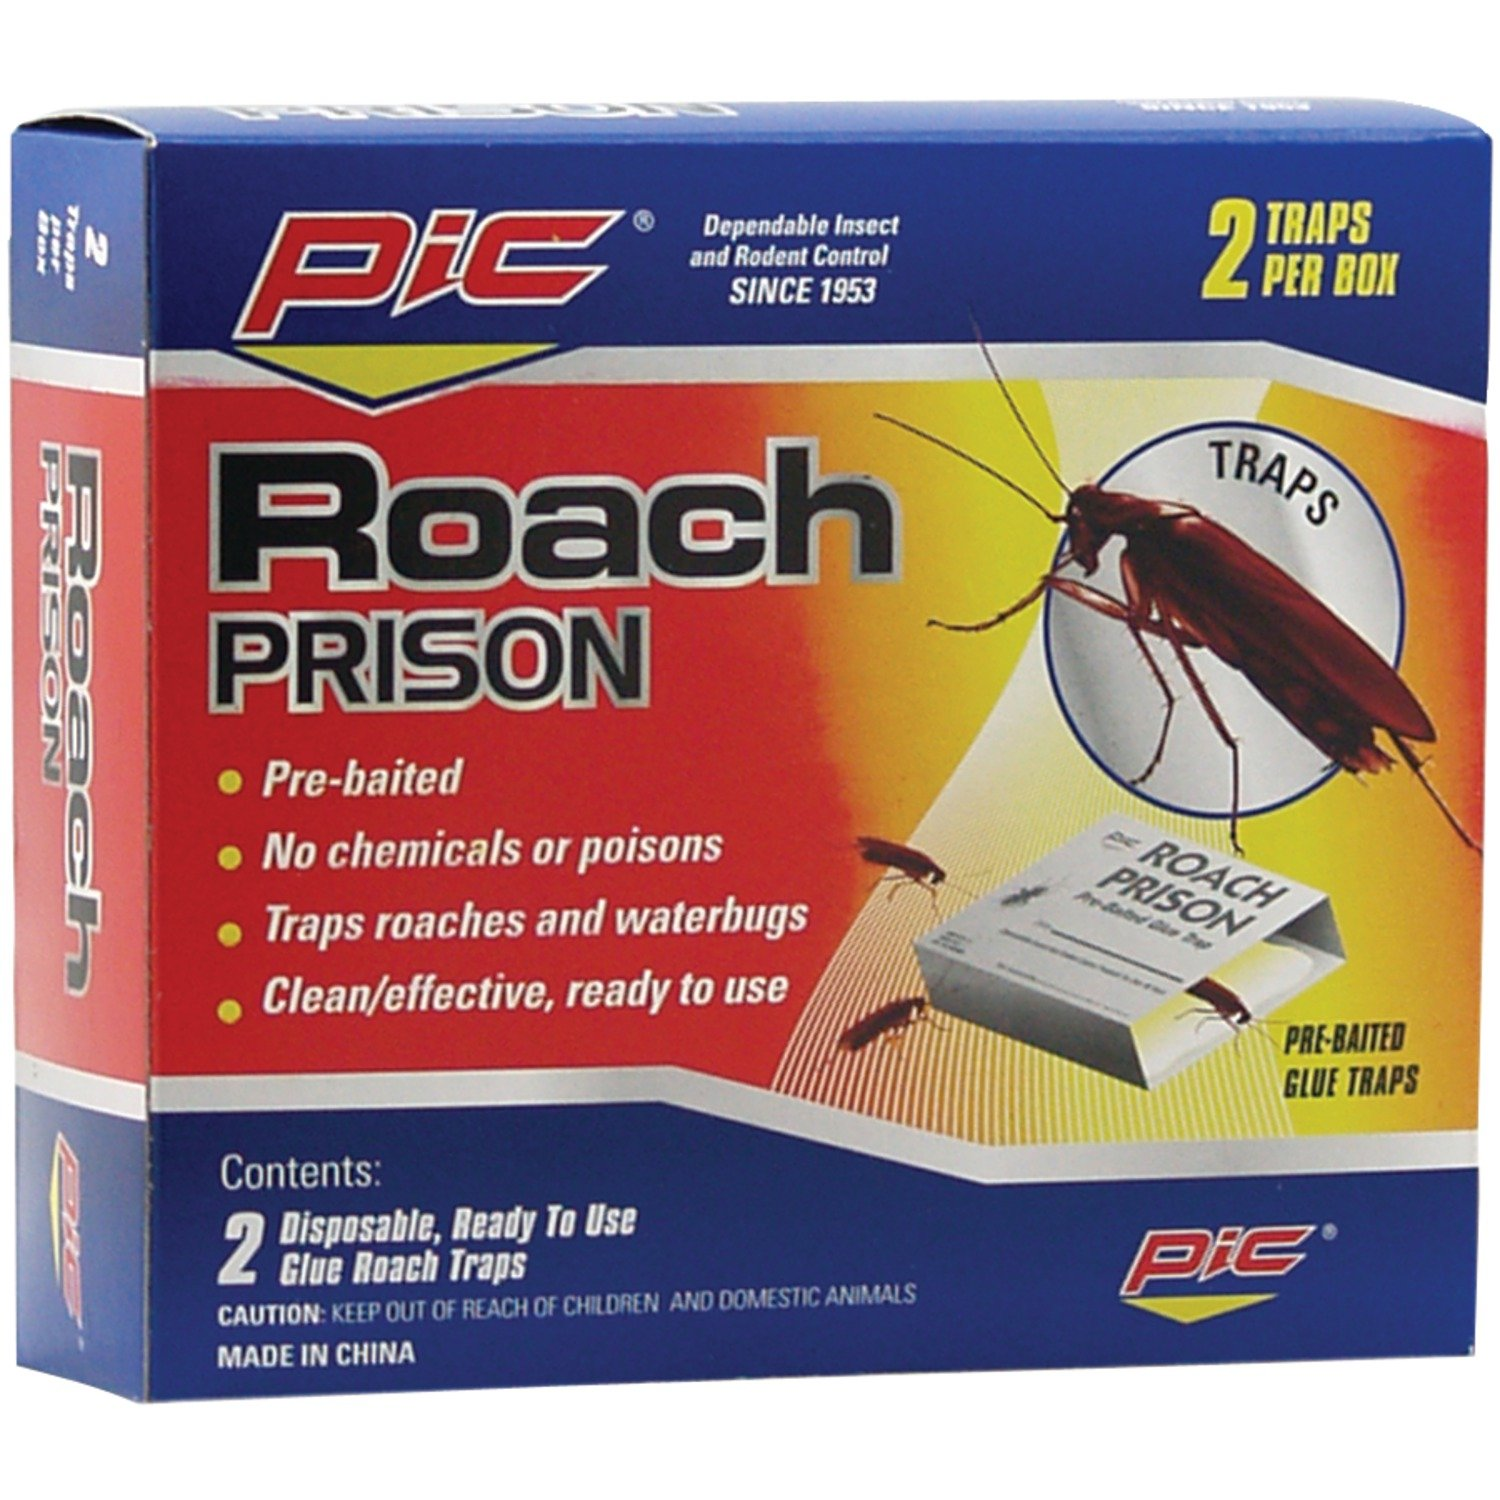 PIC Roach Prison Covered Insect Glue Traps (12 Pack of 2) by PIC